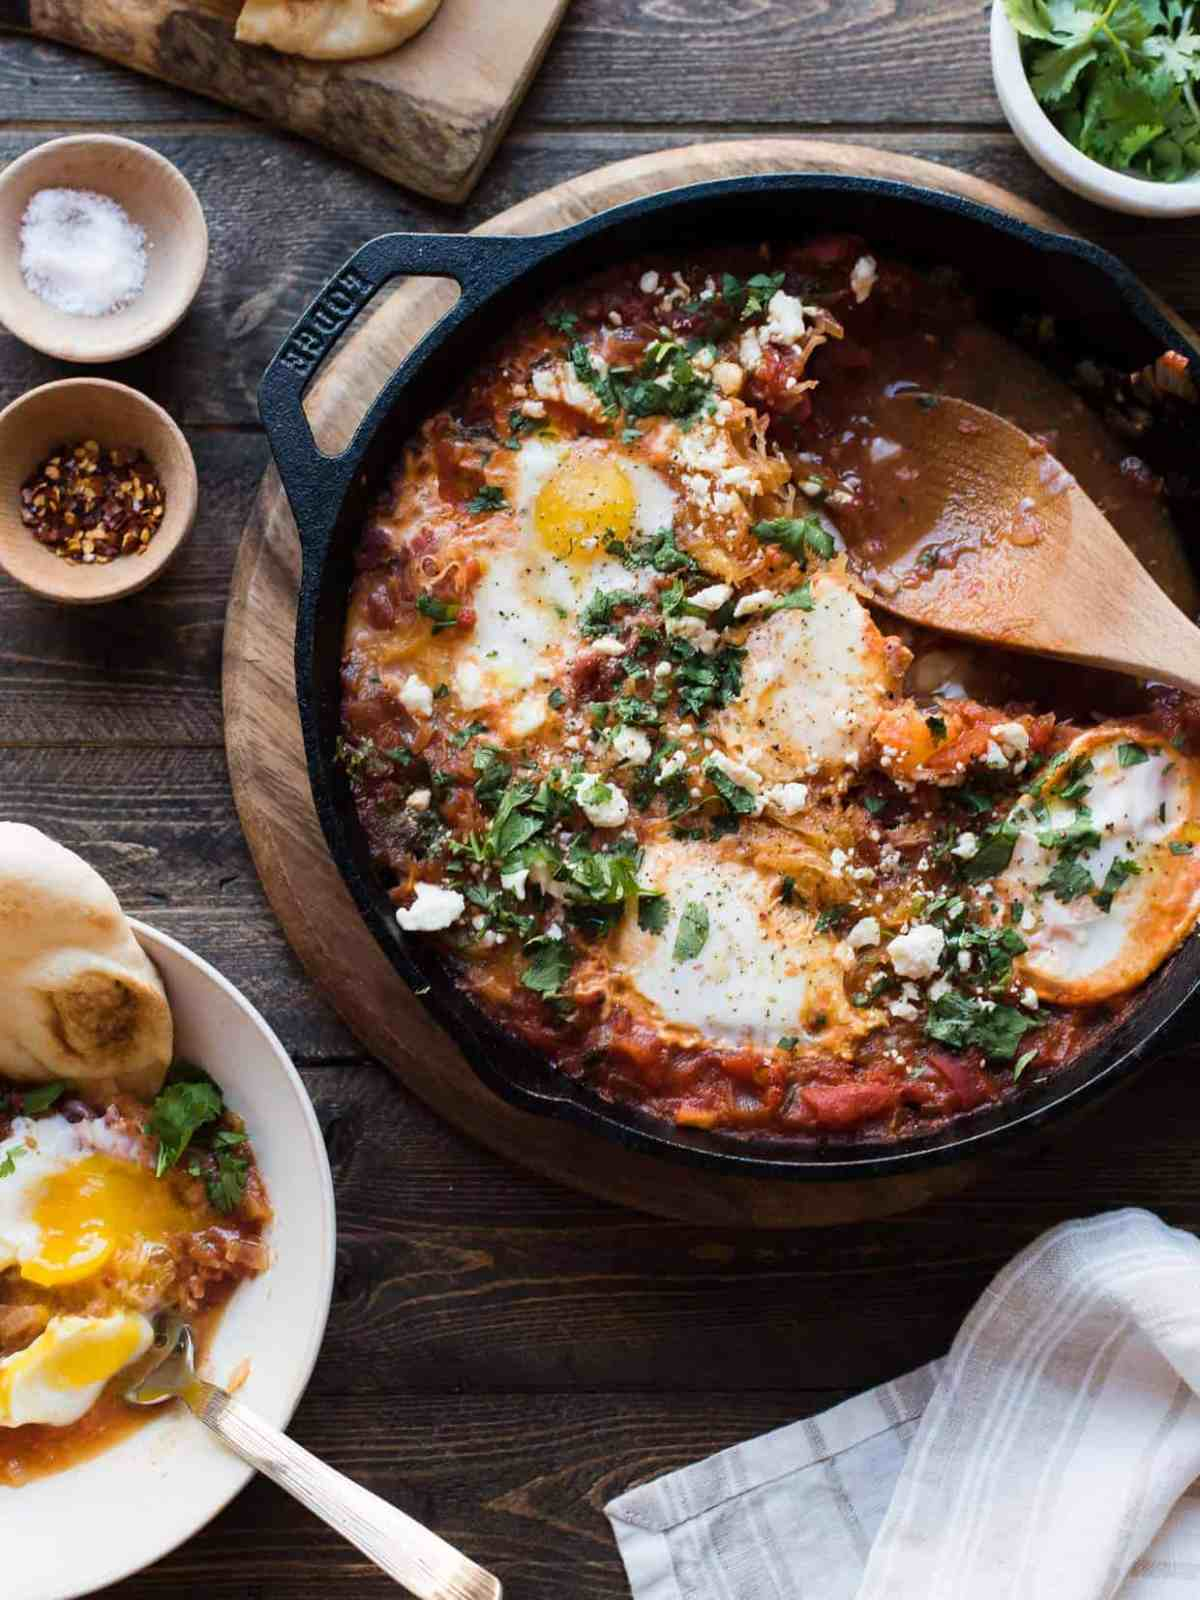 Cast iron pan filled with Spaghetti Squash Shakshuka and surrounded with garnishes and seasonings.